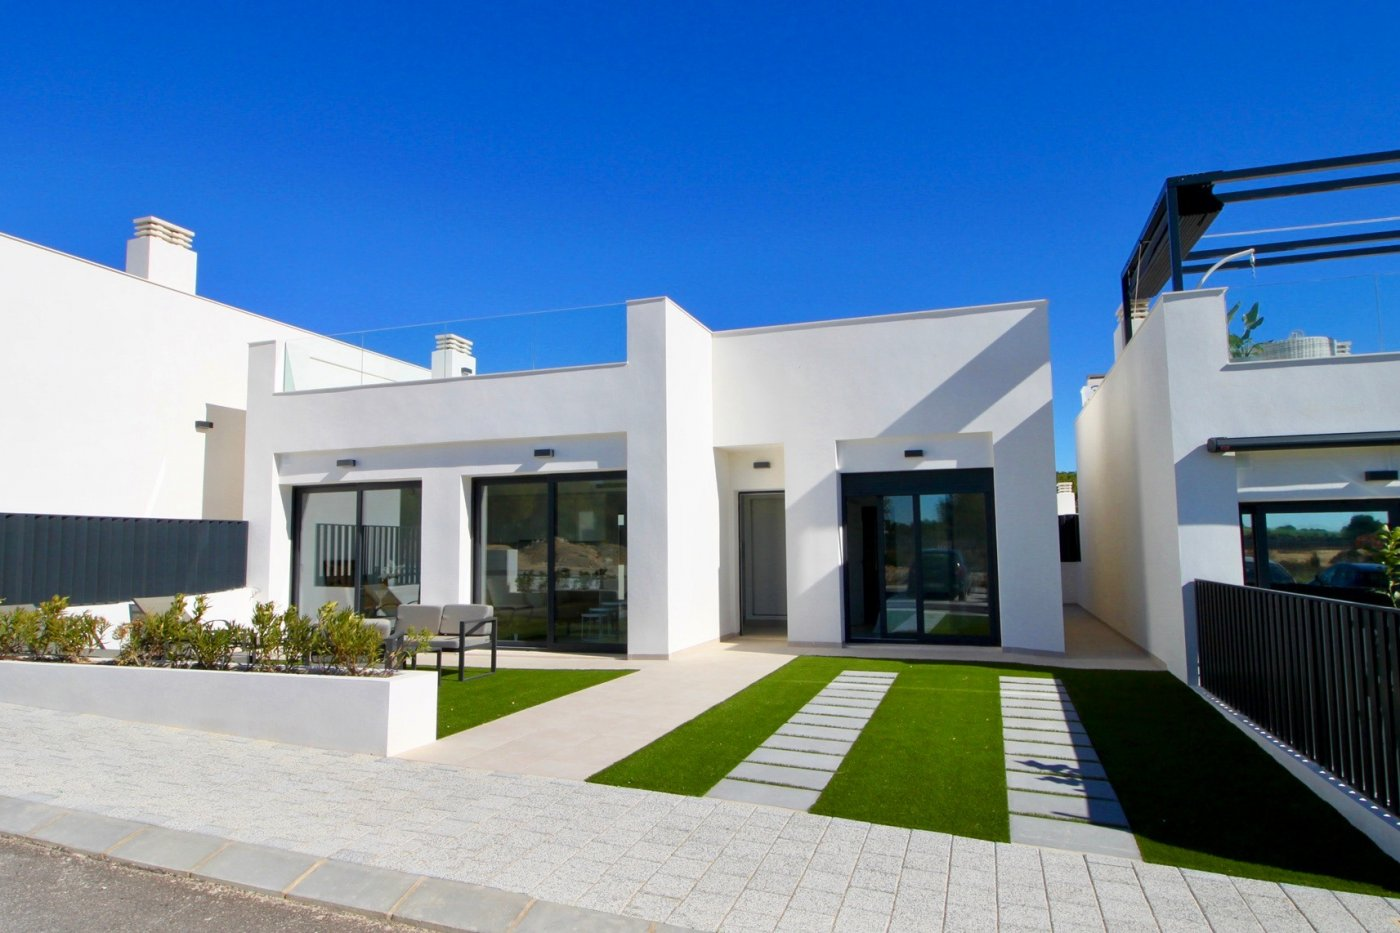 Villa ref 3092 für sale in Lo Romero Golf Spanien - Quality Homes Costa Cálida